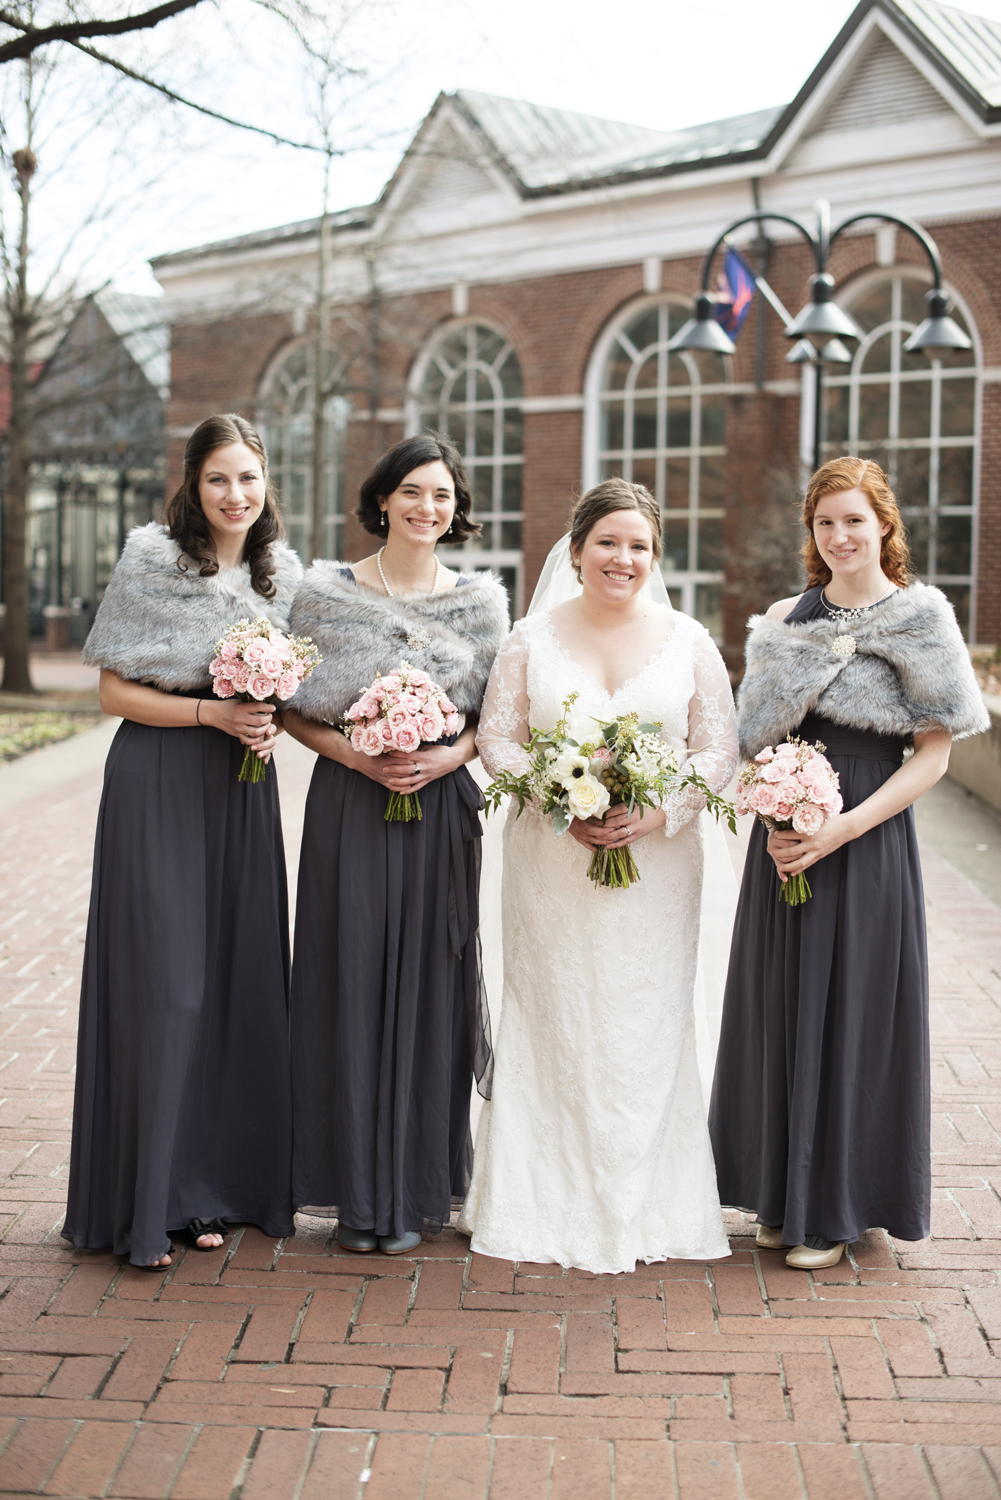 Lavender purple dresses with gray fur stoles for a December wedding